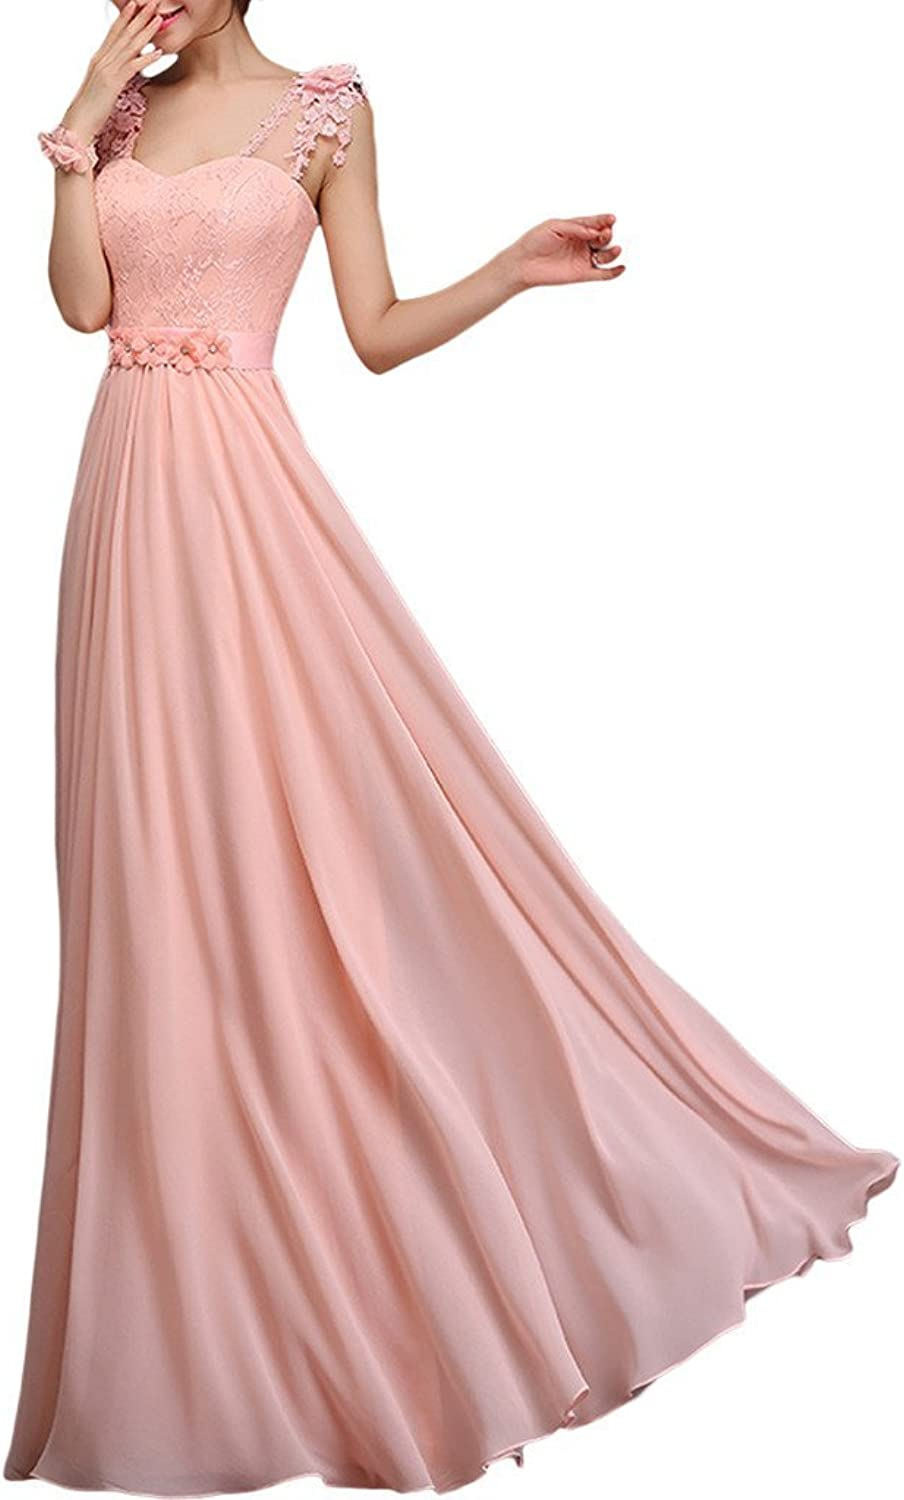 Angel Bride Women's Formal Evening Dresses with Sash Straps Prom Gowns 2015